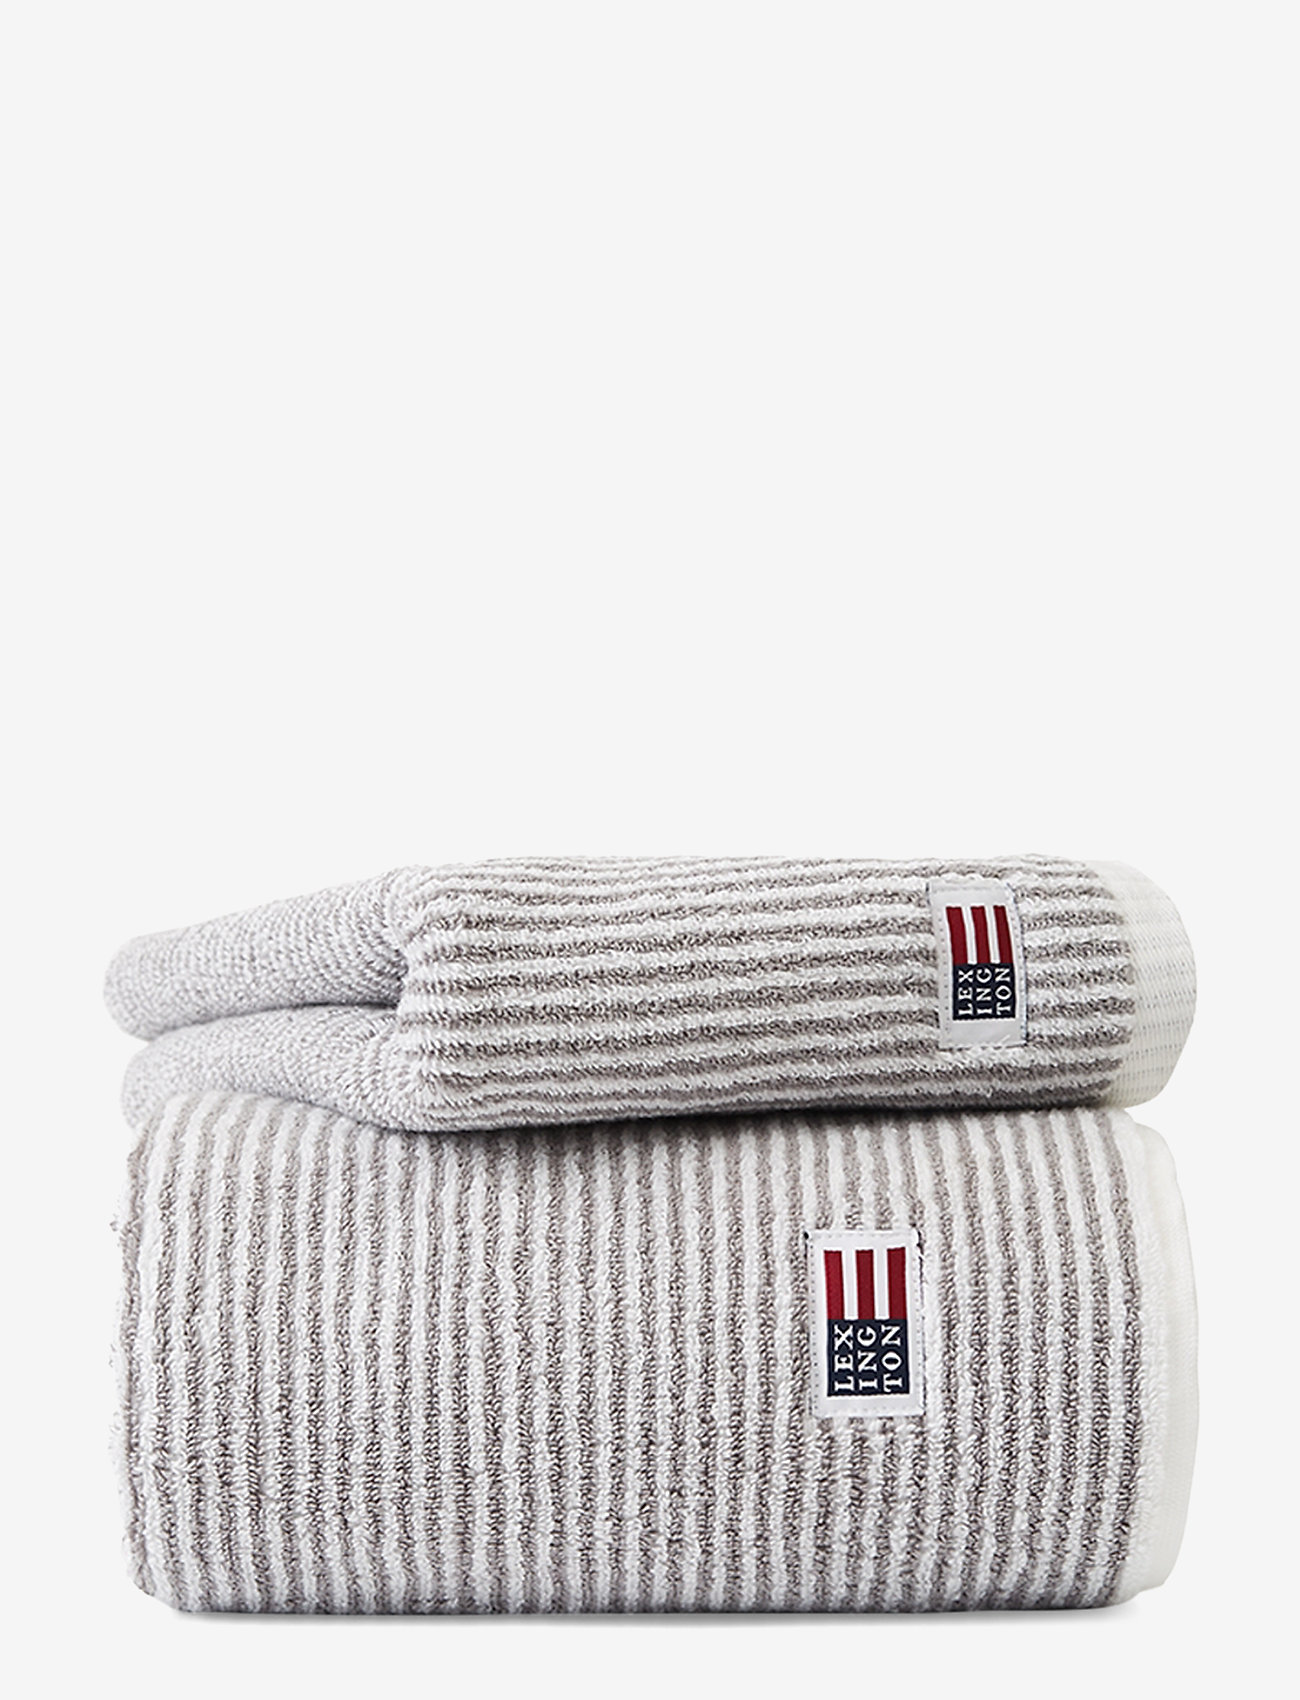 Lexington Home - Original Towel White/Gray Striped - pyyhkeet & kylpypyyhkeet - white/gray - 0